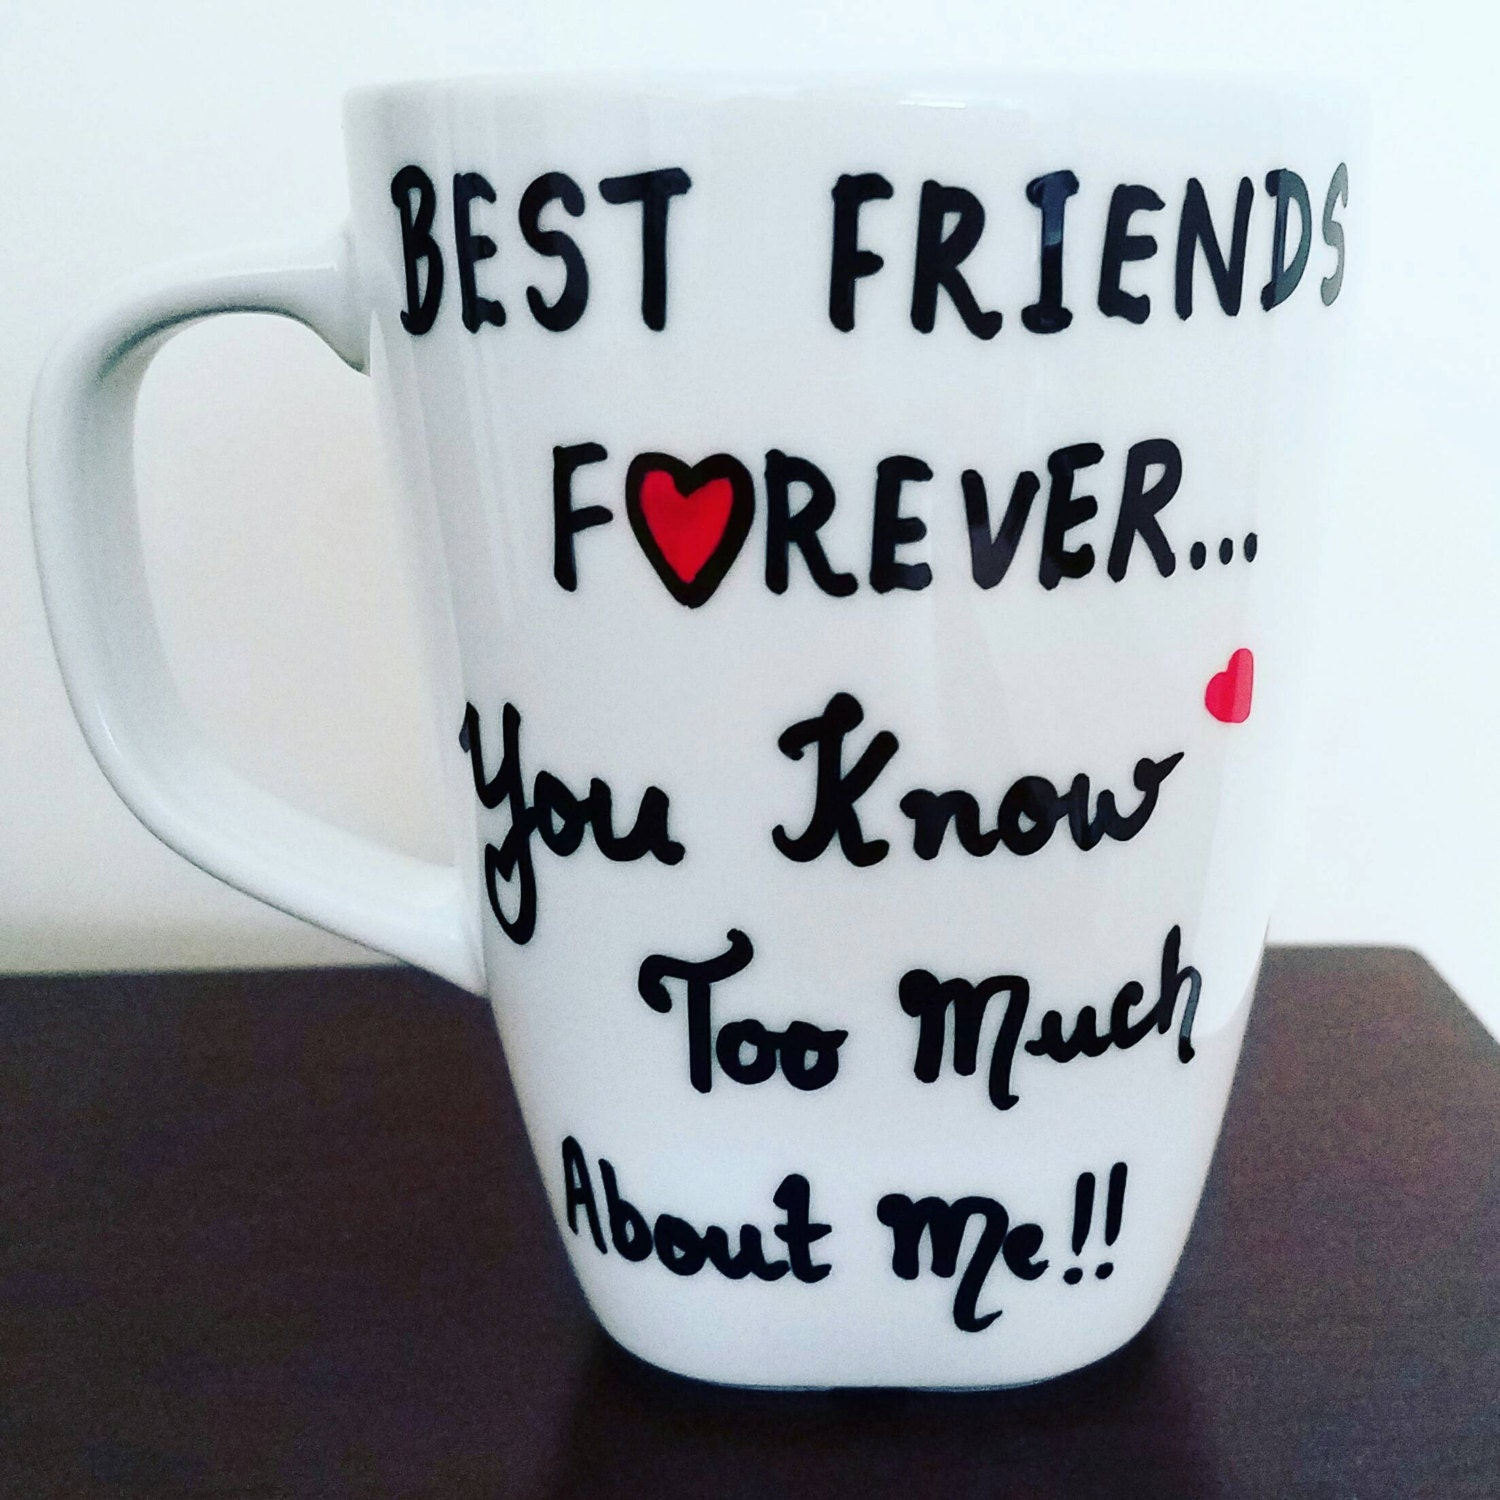 Best Friend Gift Funny Sign Birthday Present Friendship Gift: Best Friends Forever Coffee Mug Funny Gift For Friend BFF 10